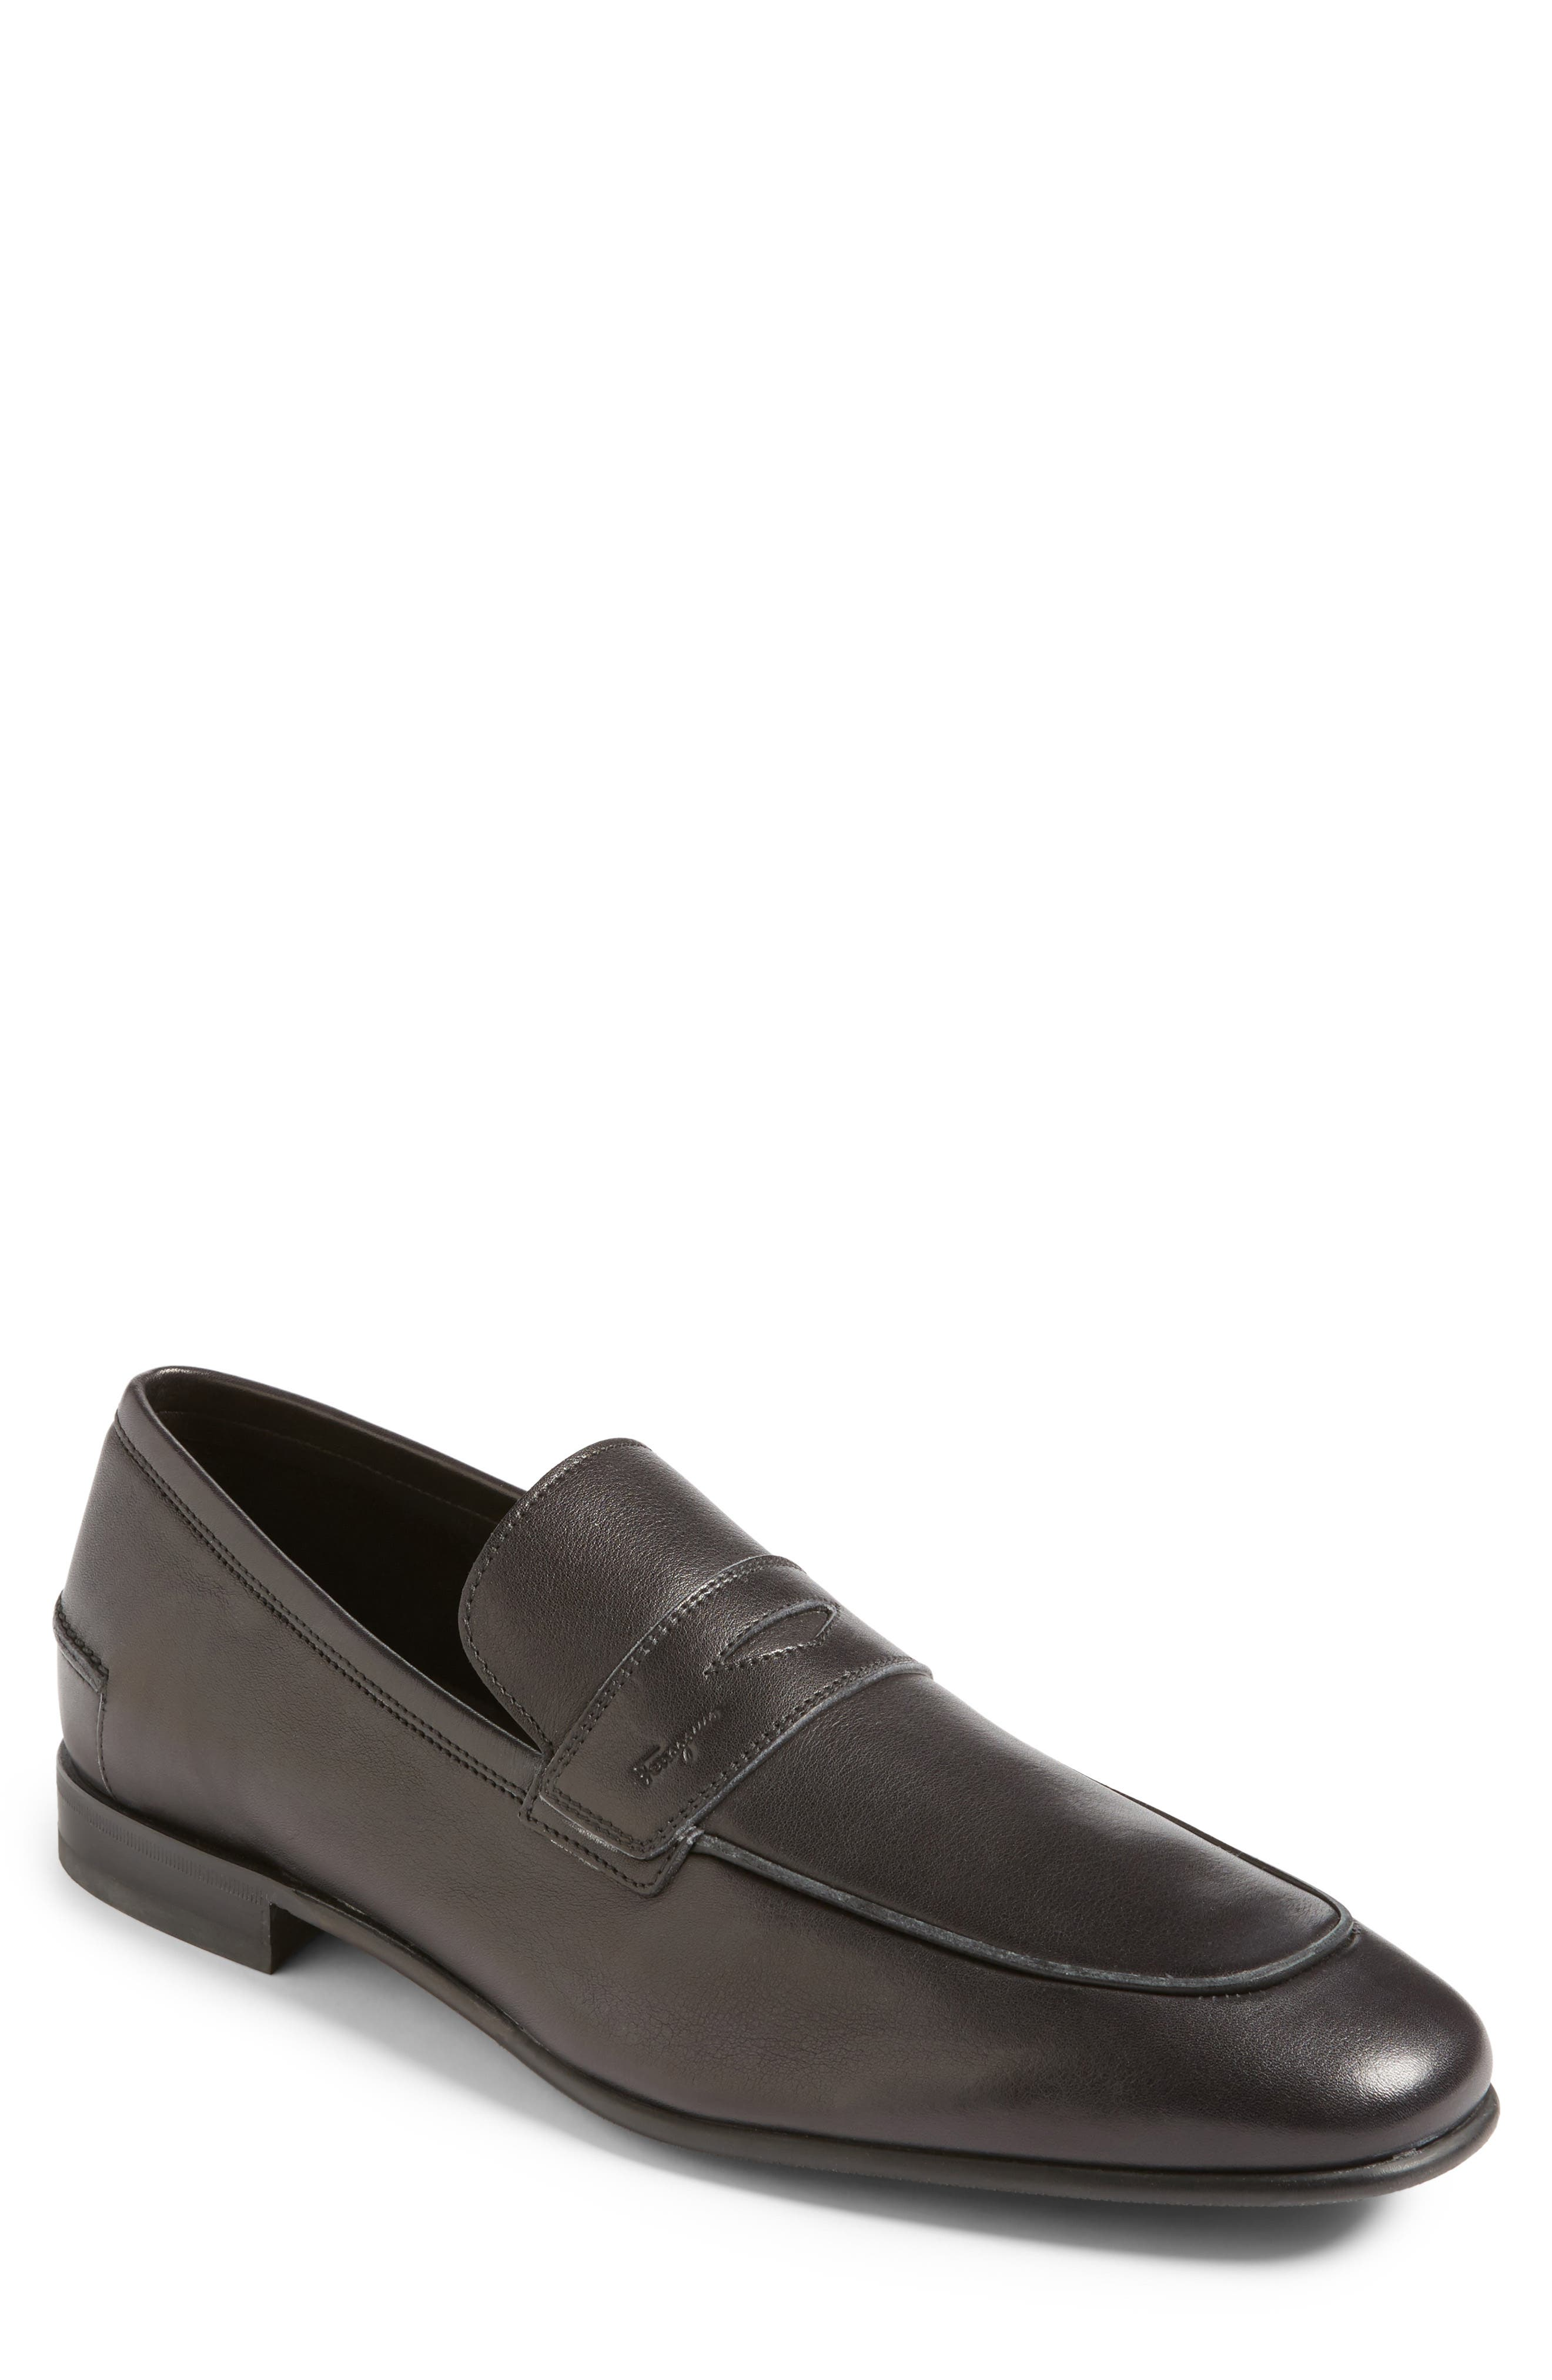 Duchamp Penny Loafer,                             Main thumbnail 1, color,                             001